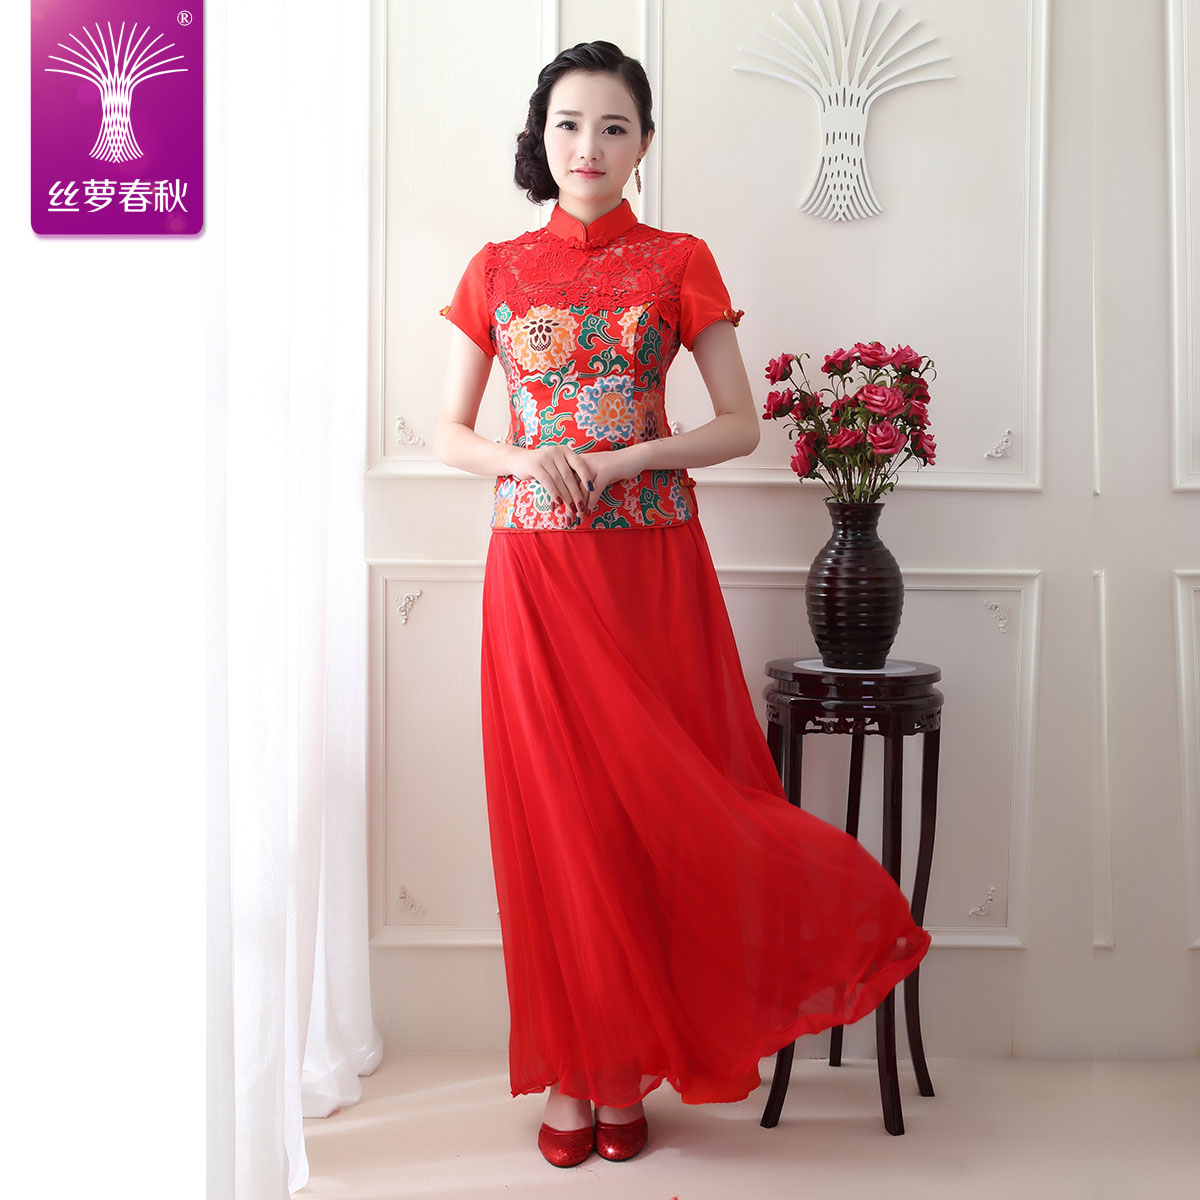 2016 new toast clothing red lace improved cheongsam cheongsam dress retro long section of the bride wedding toast clothing cheongsam dress short sleeve